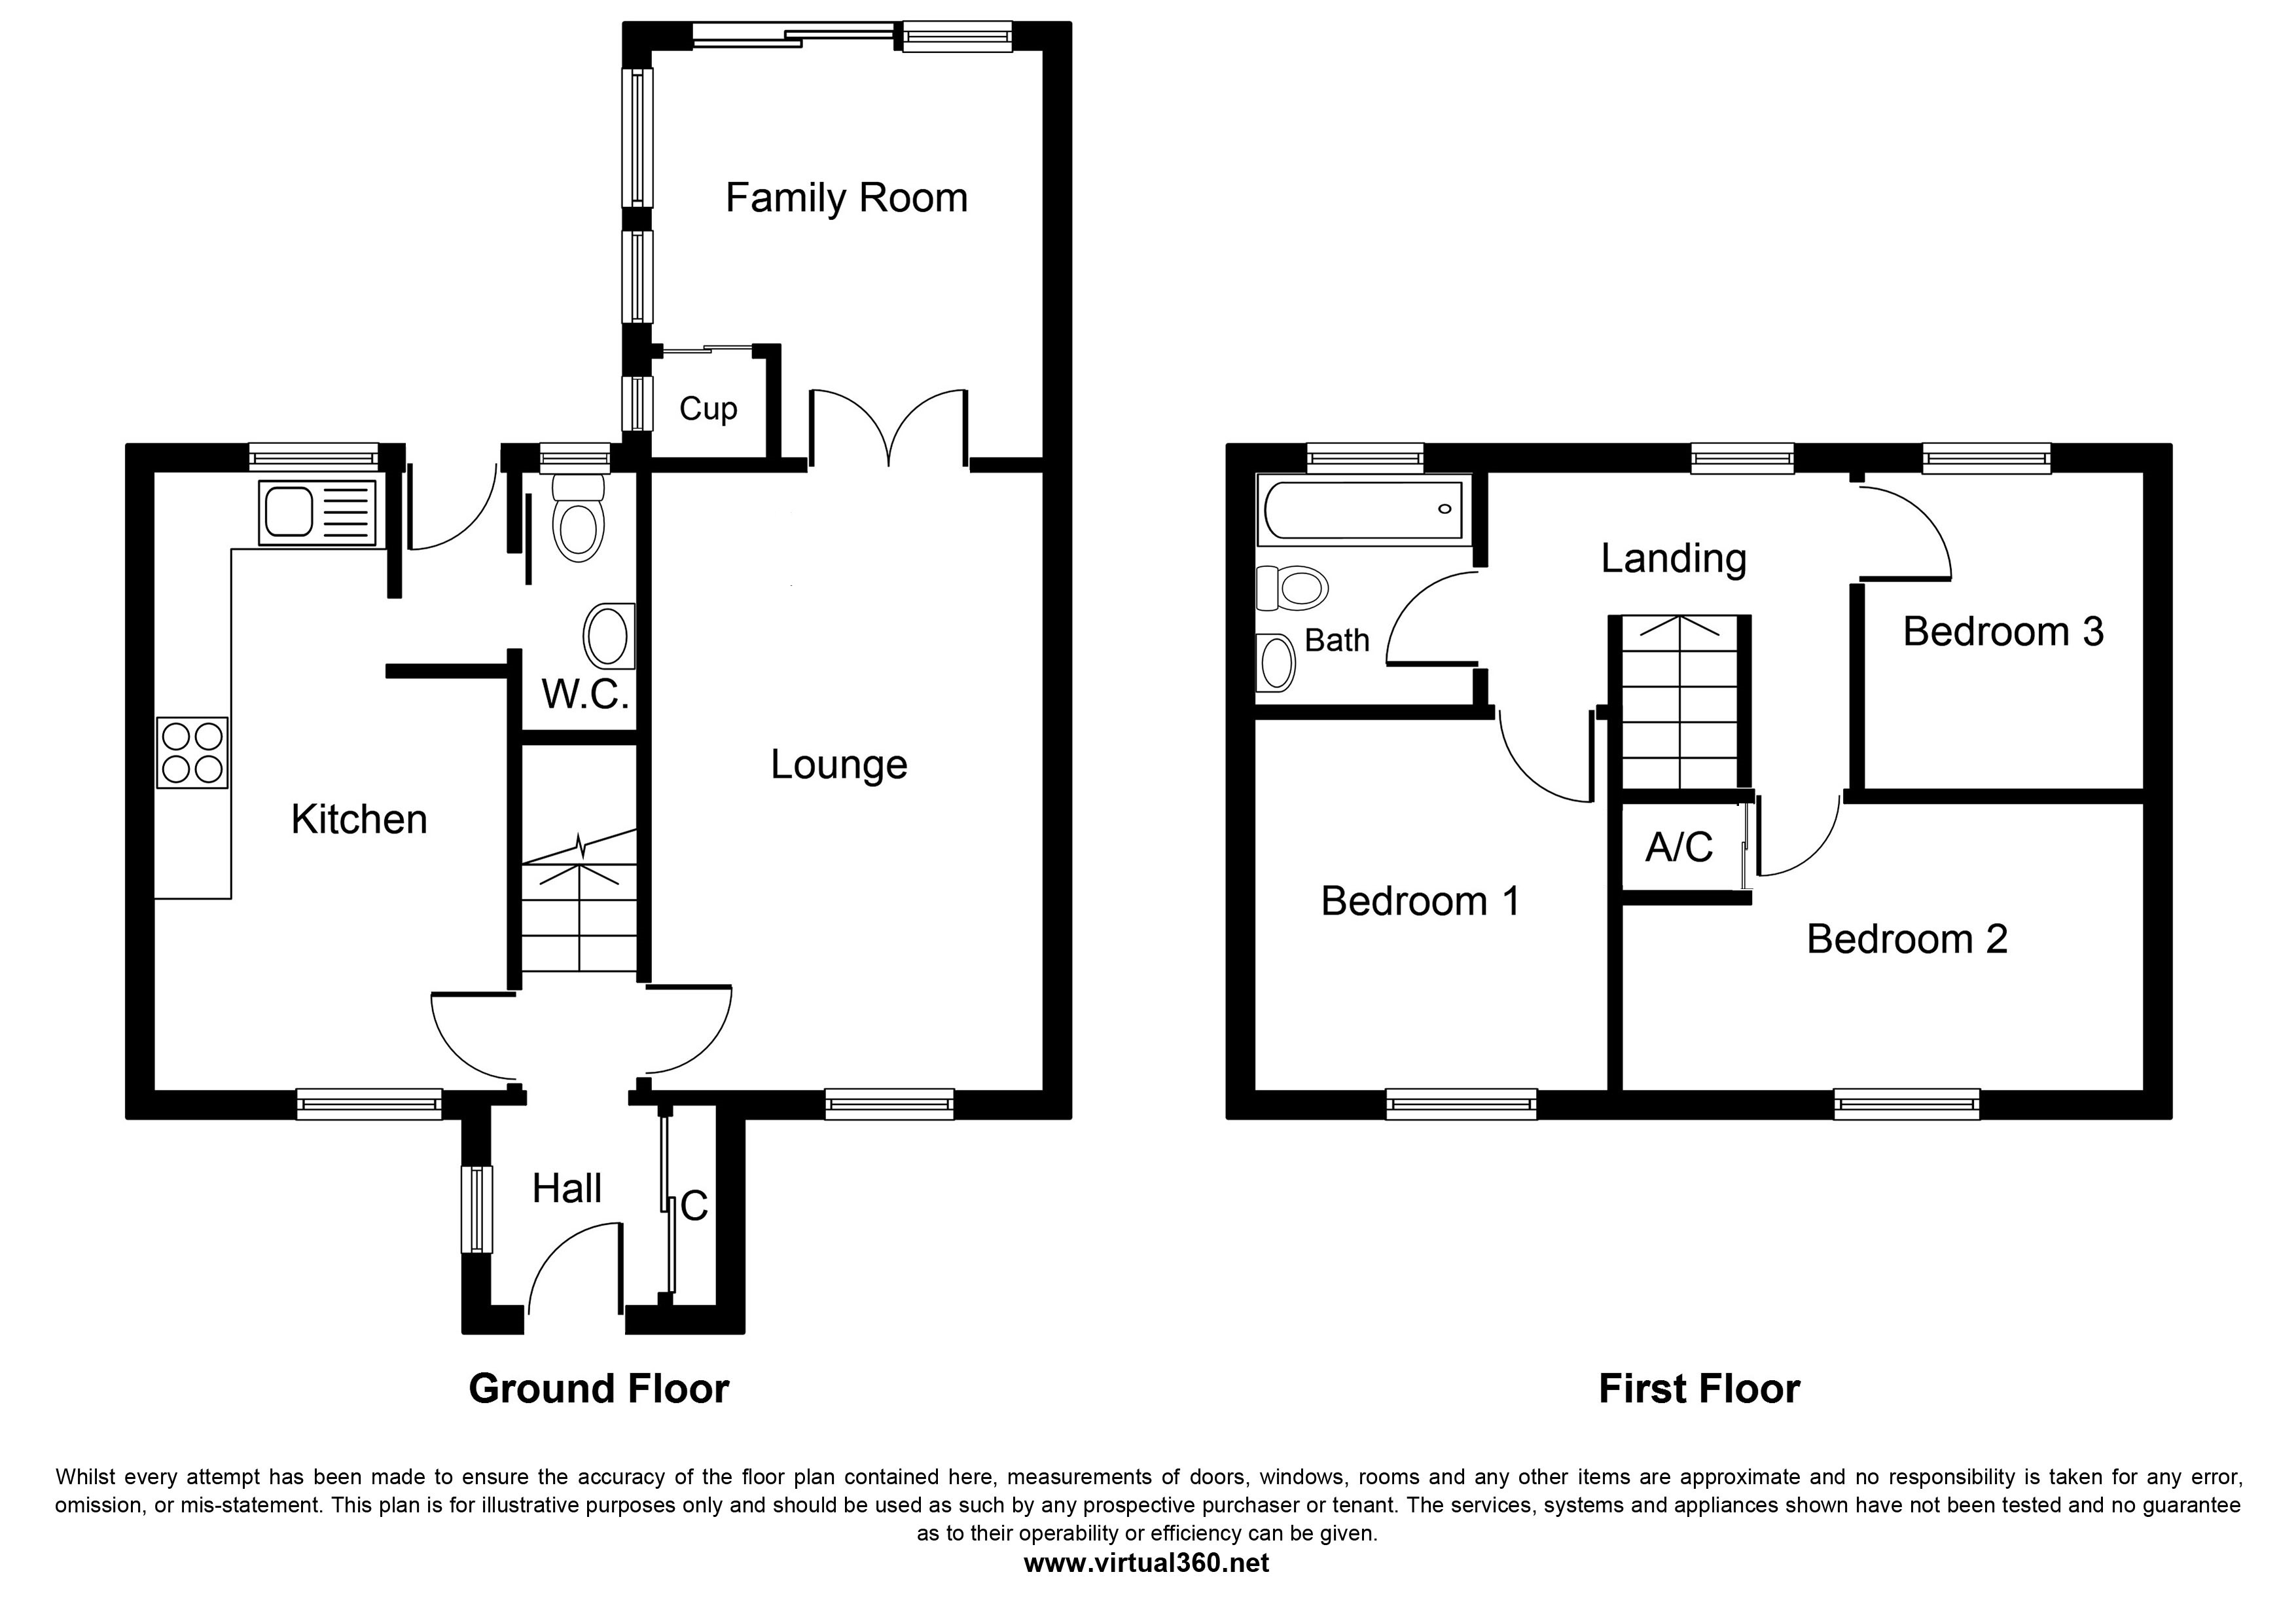 Shelthorpe Avenue, Loughborough floor plan